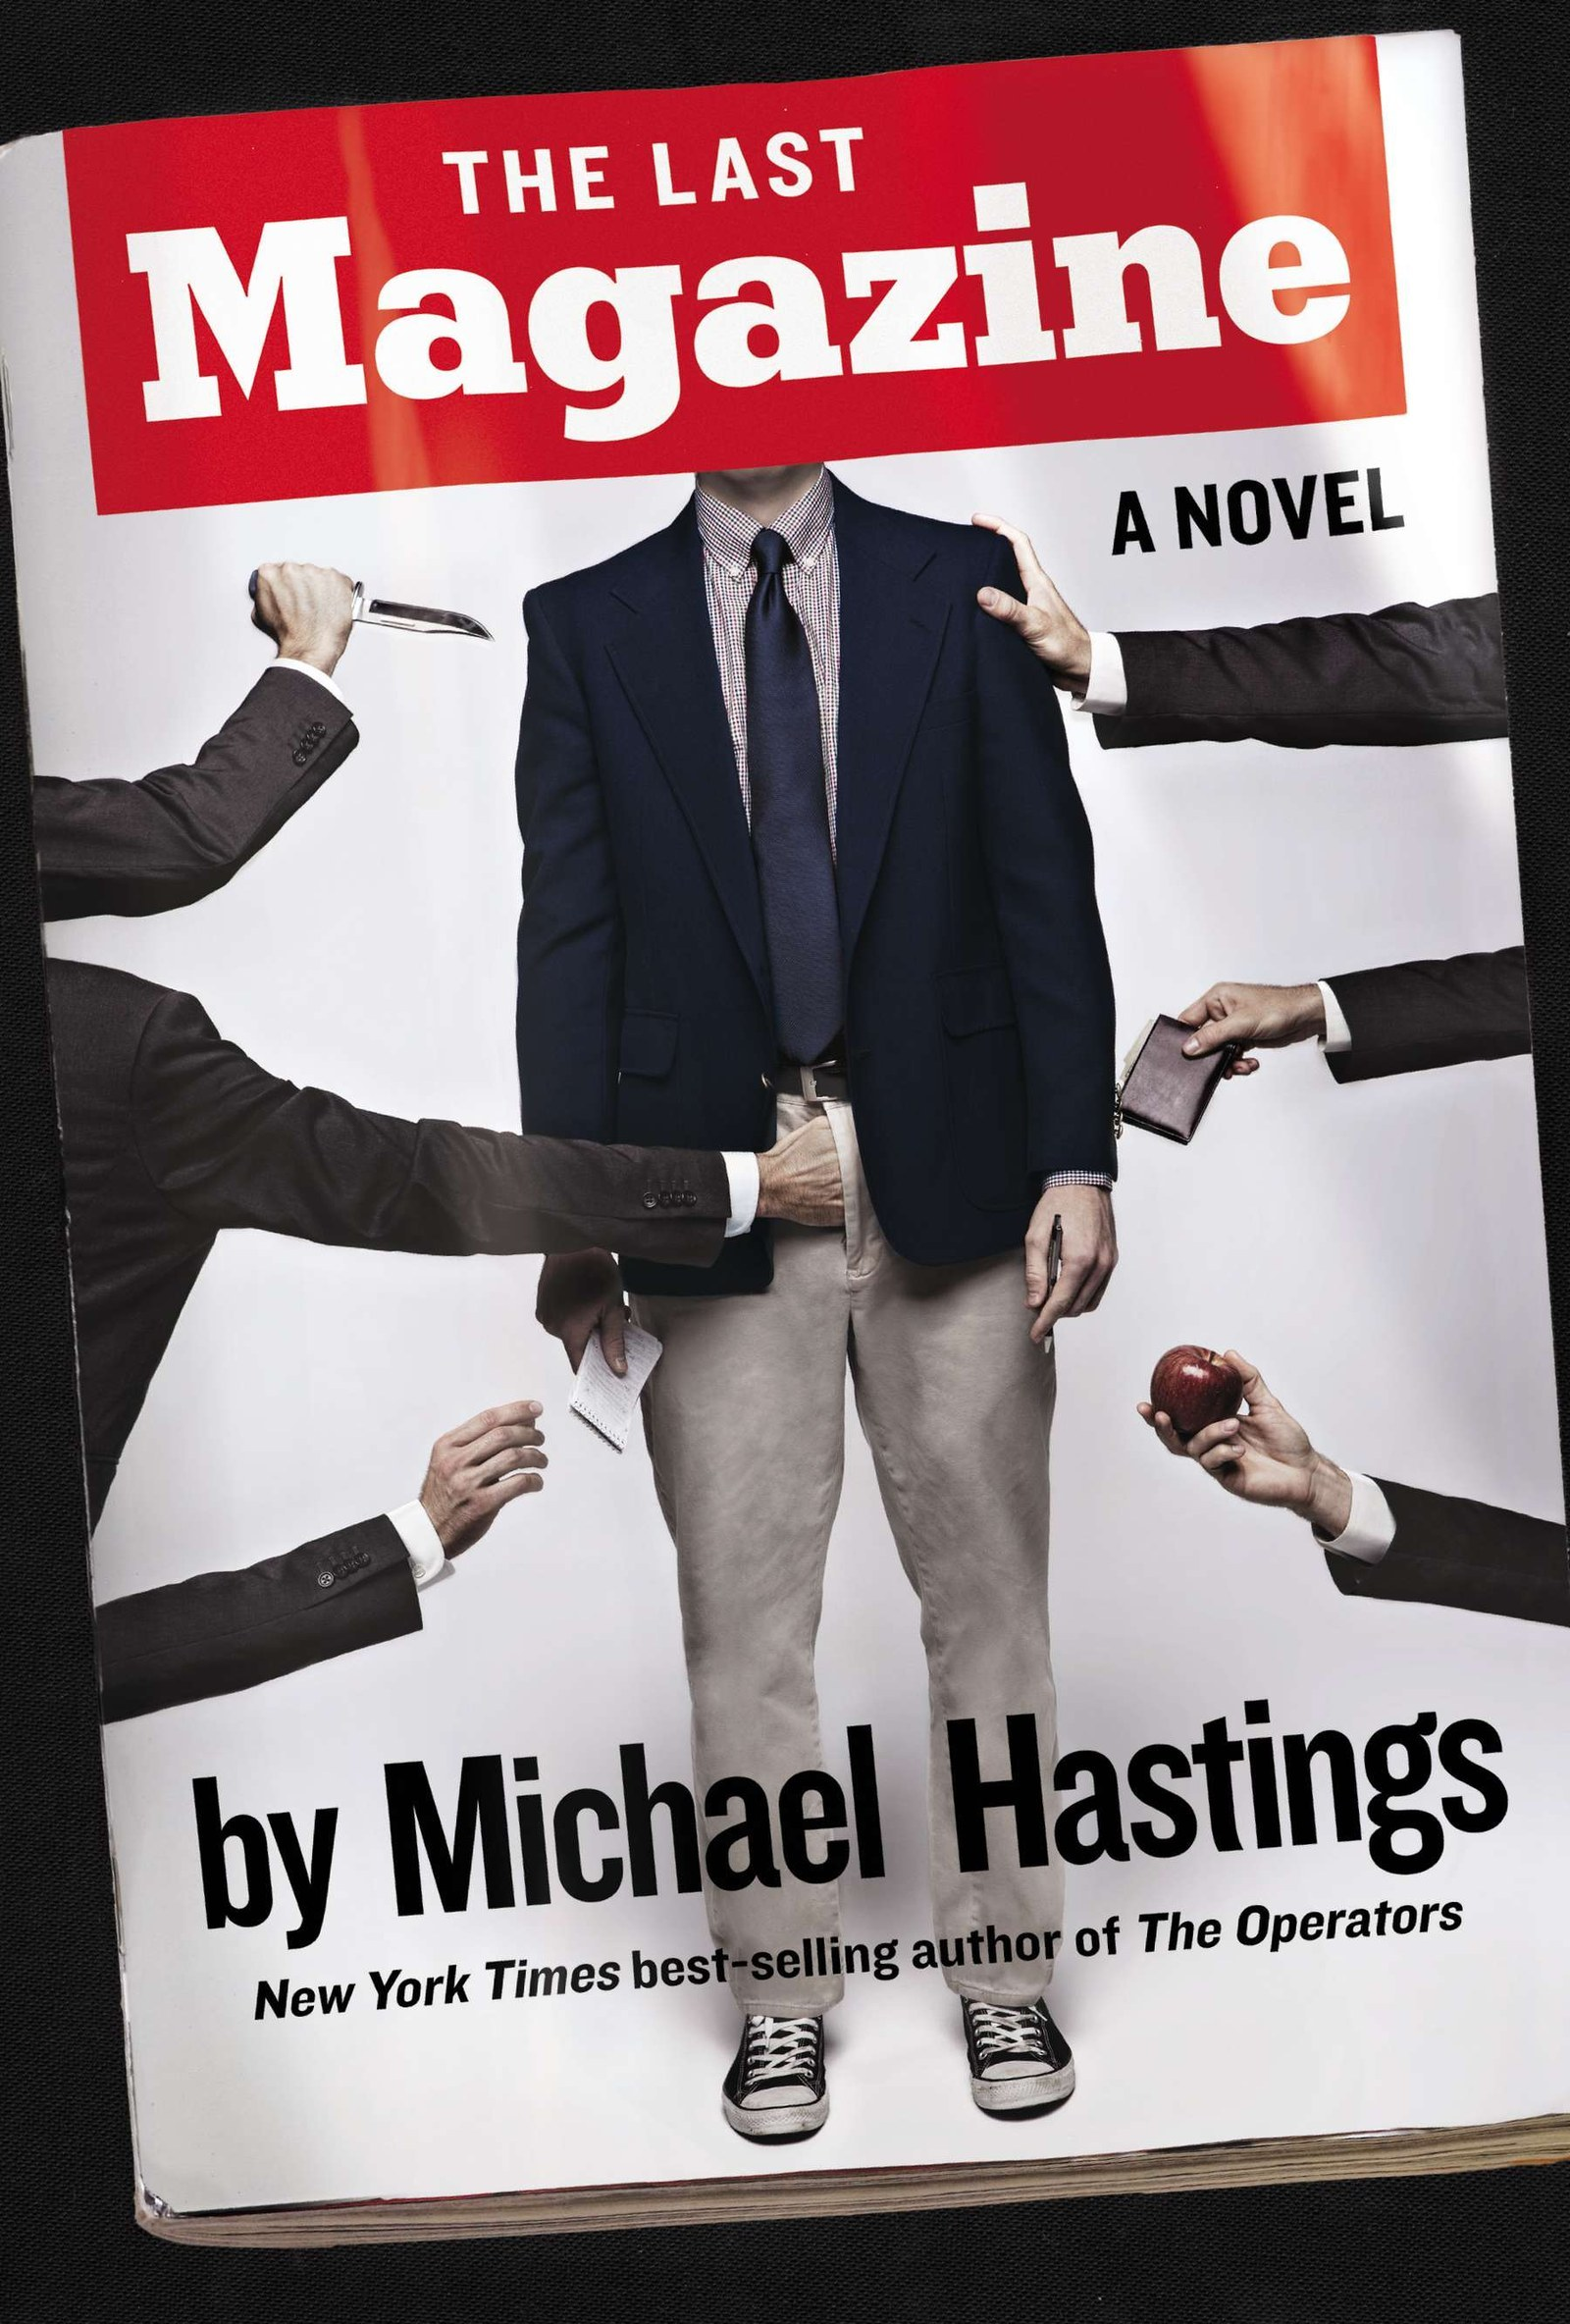 A Party At The Last Magazine: An Exclusive Excerpt From Michael Hastings' New Novel